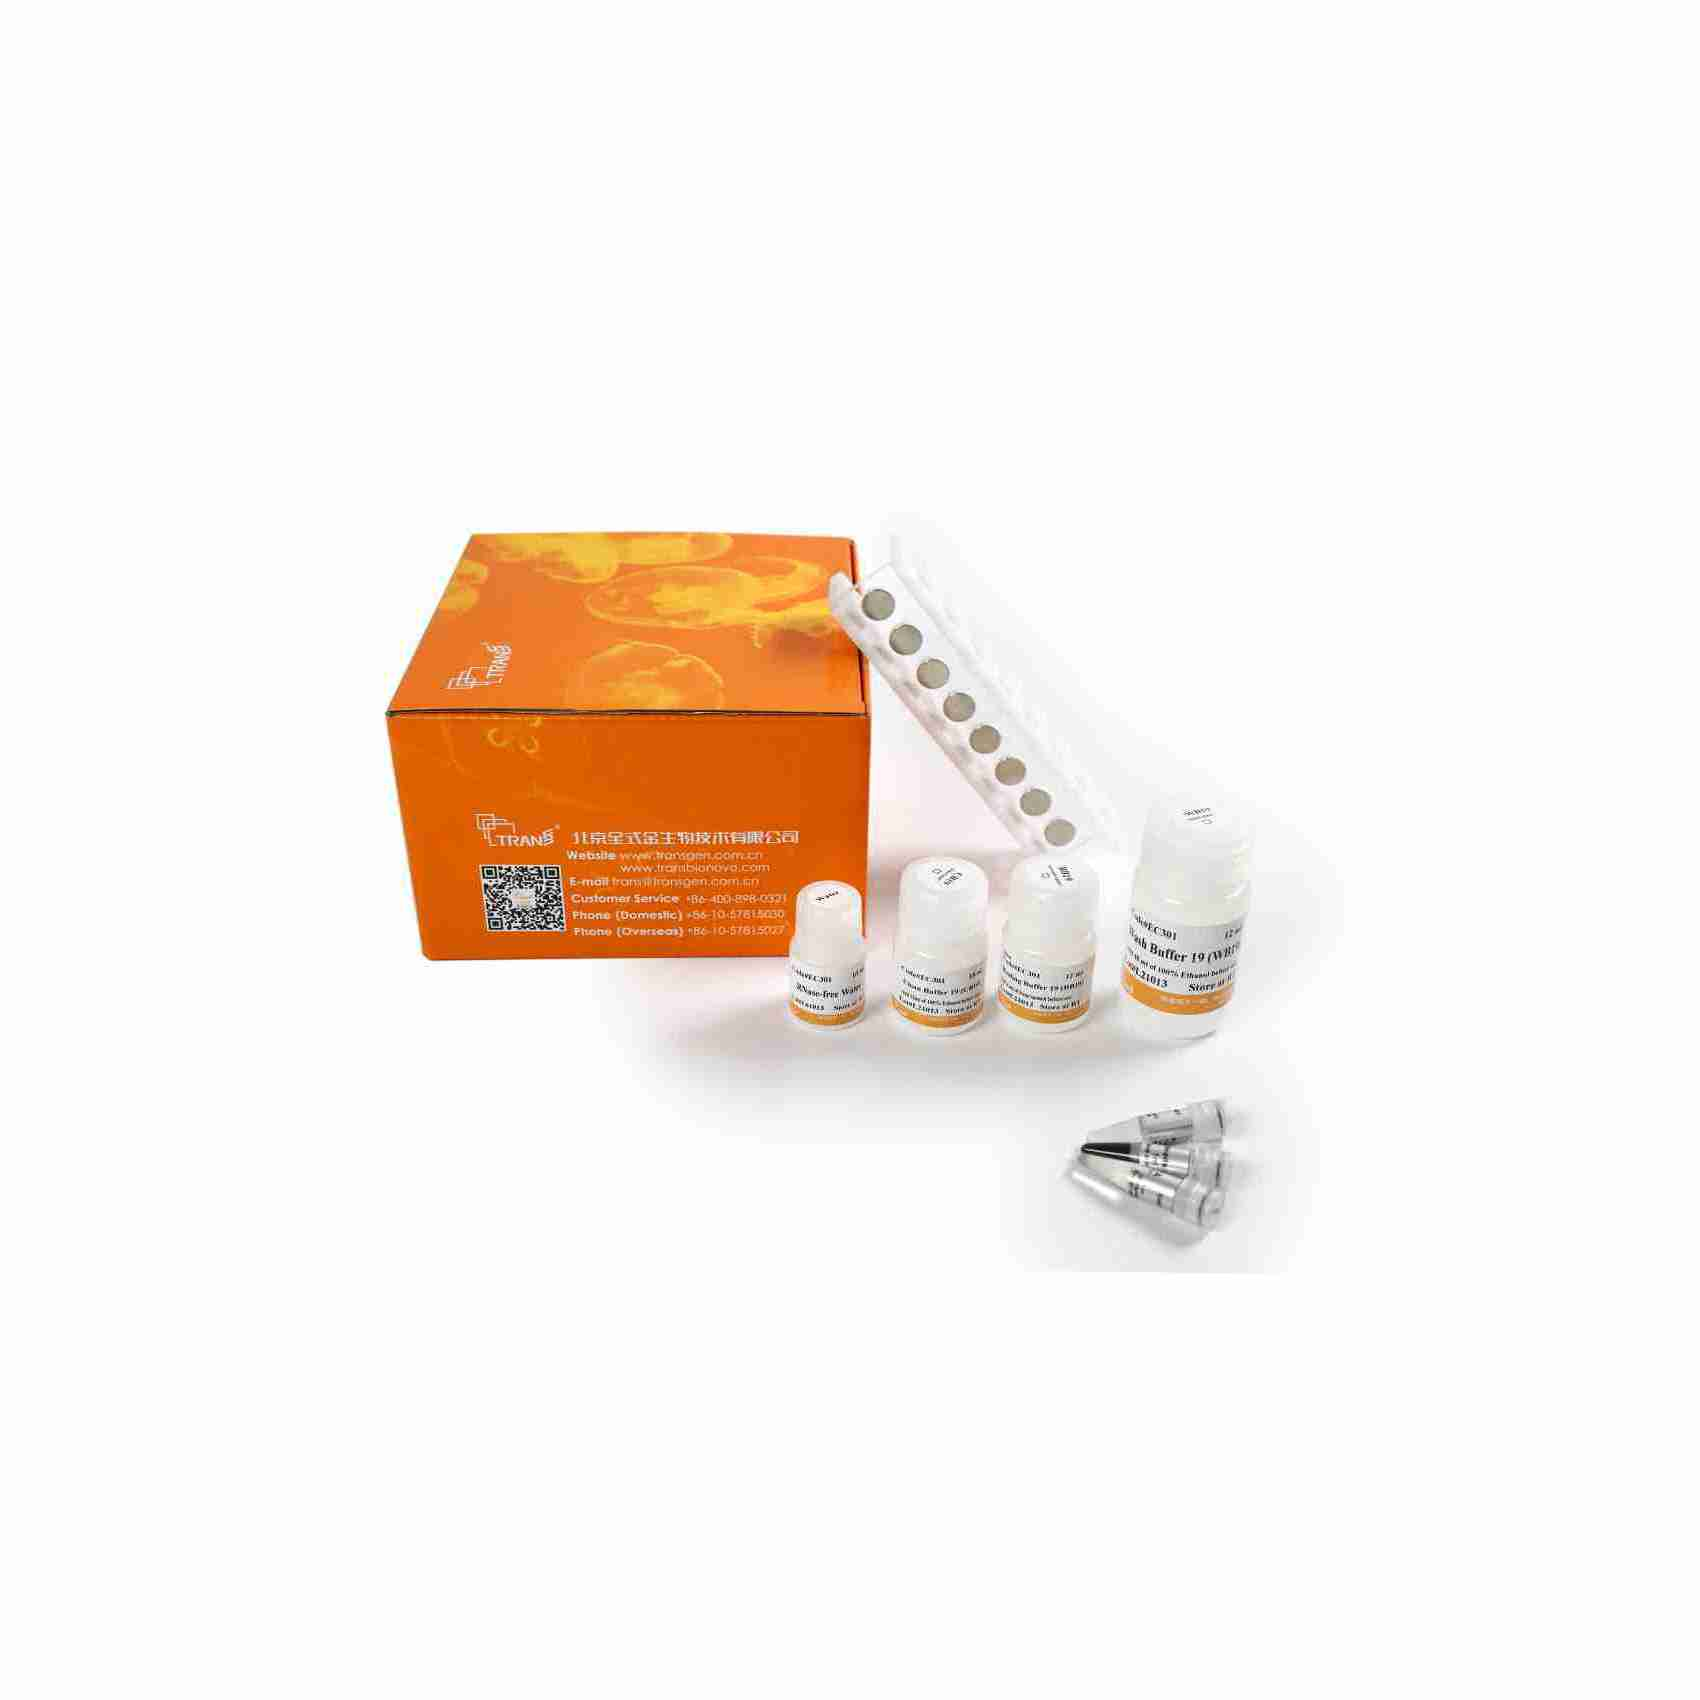 MagicPure® Viral DNA/RNA Kit